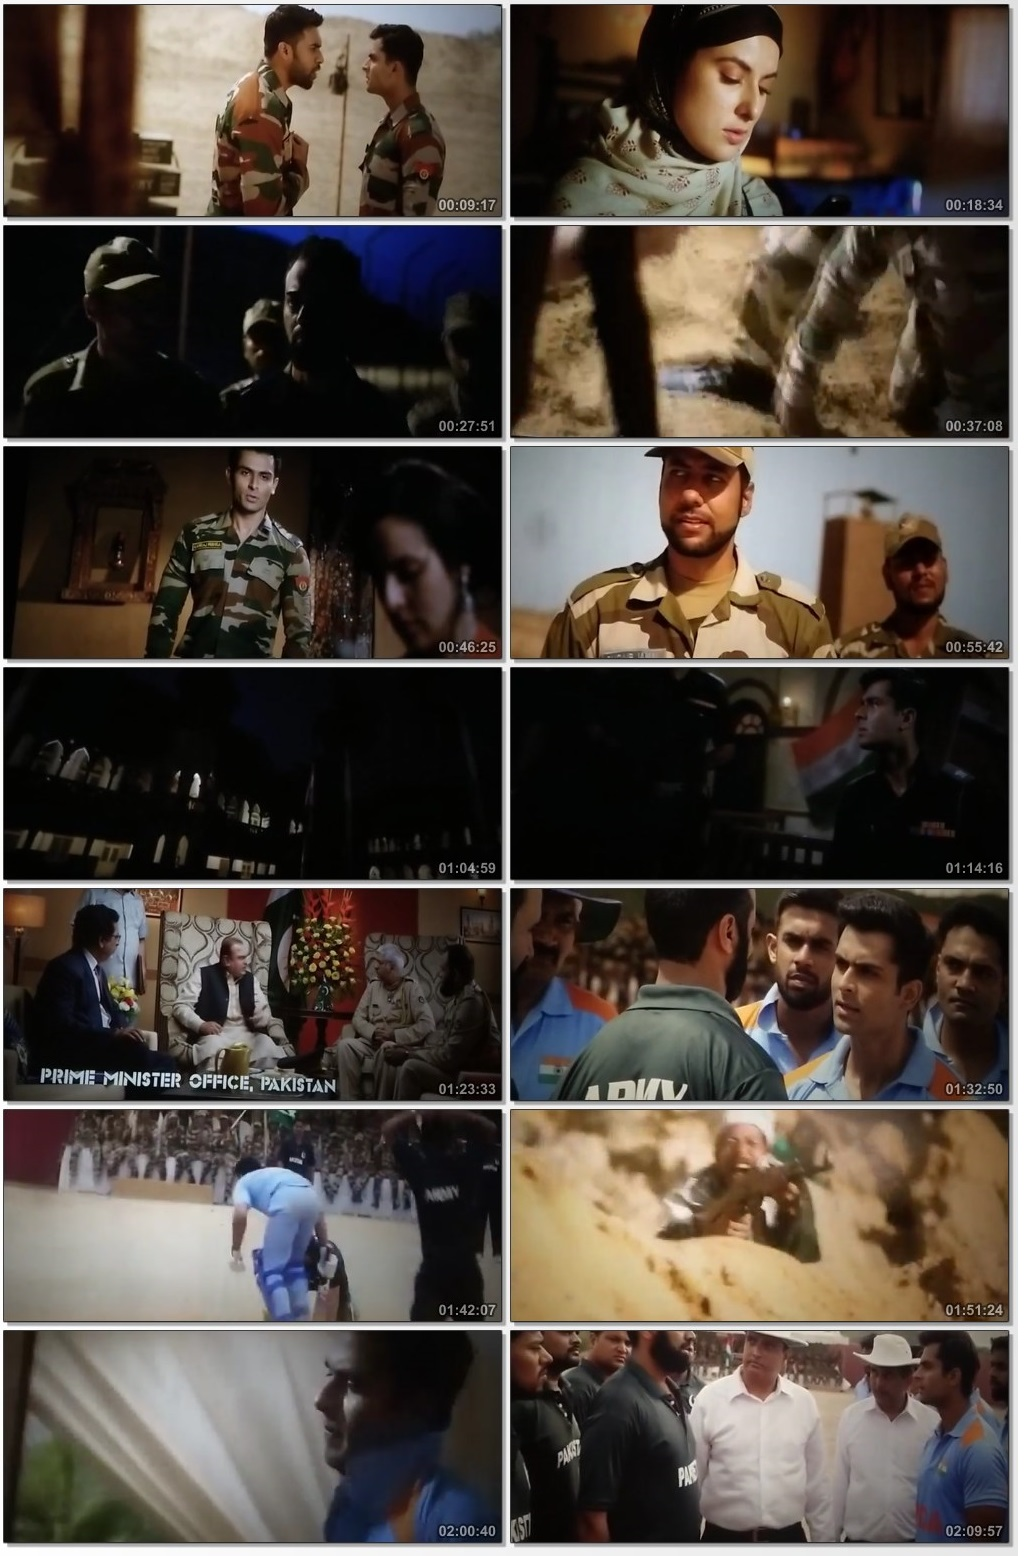 3e1dfda7aec6f9526752e89fa61601b2 Battalion 609 (2019) Full Movie Download 300MB 480P PDVD HD Free Hindi